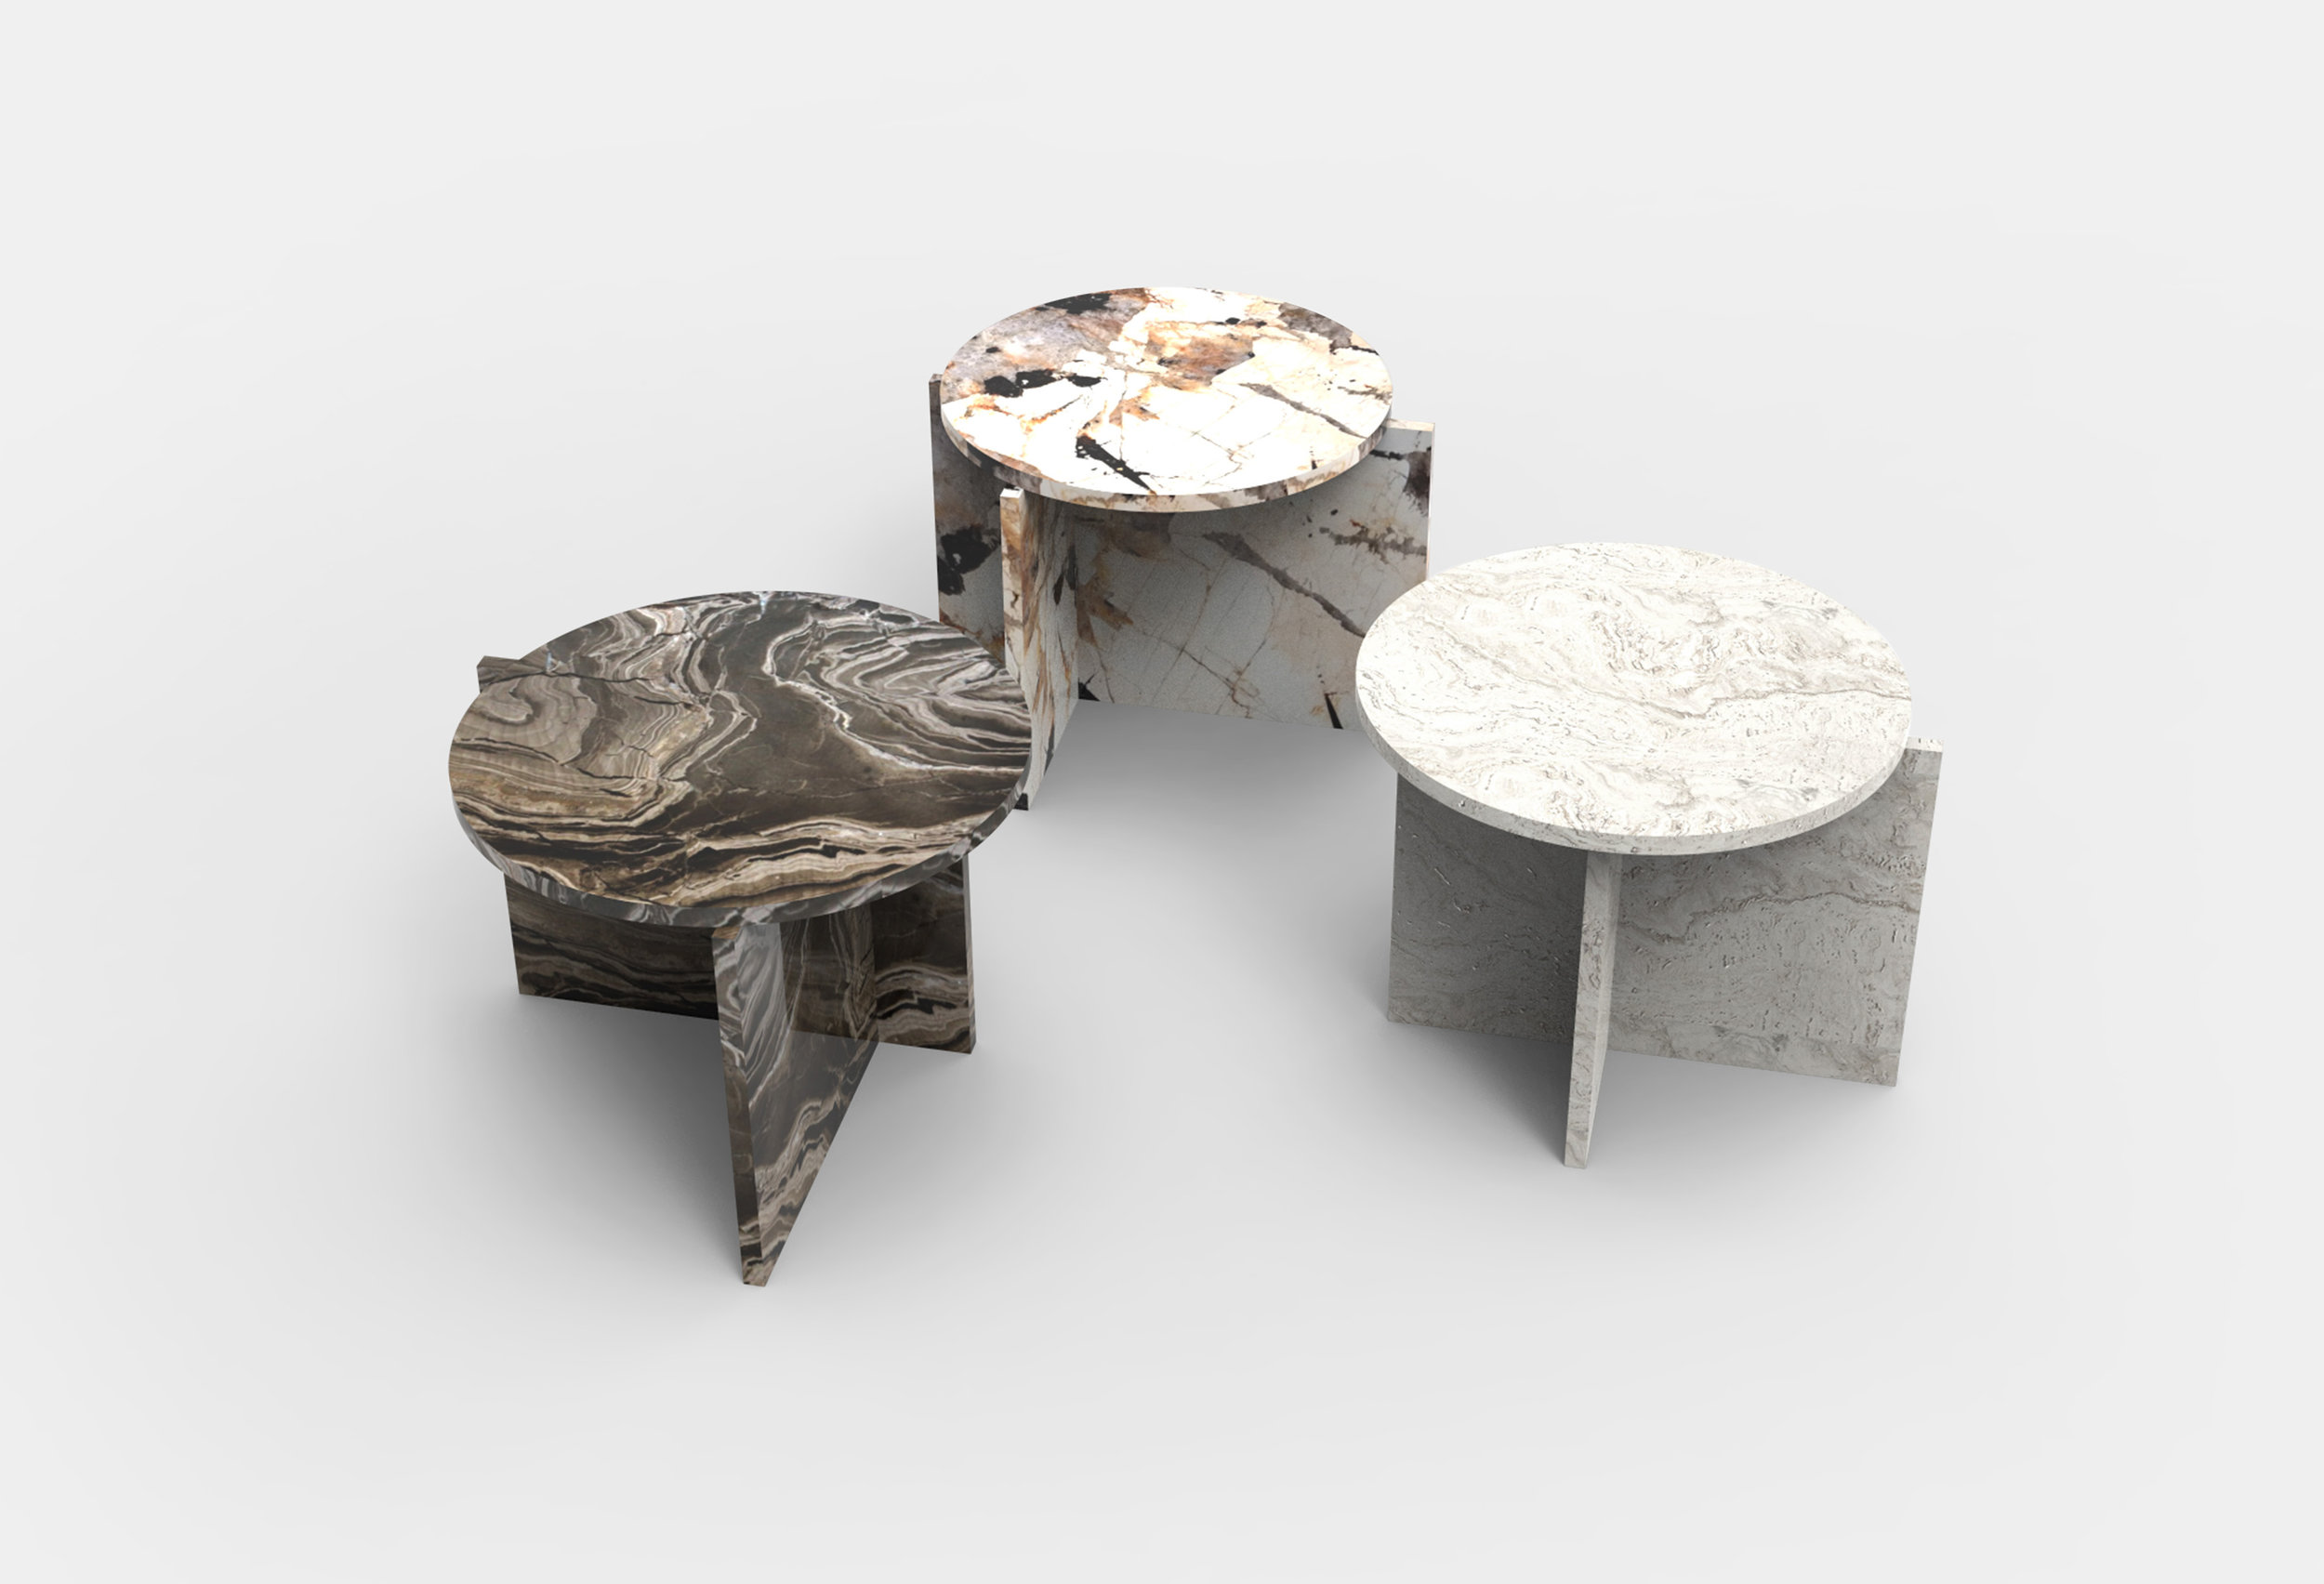 - ORIGINCoffee tables made to showcase the beauty of natural stone.Two pieces of stone meet off-center with the table top.The Origin tables are created with no visible construction and are available in a number of different stones.